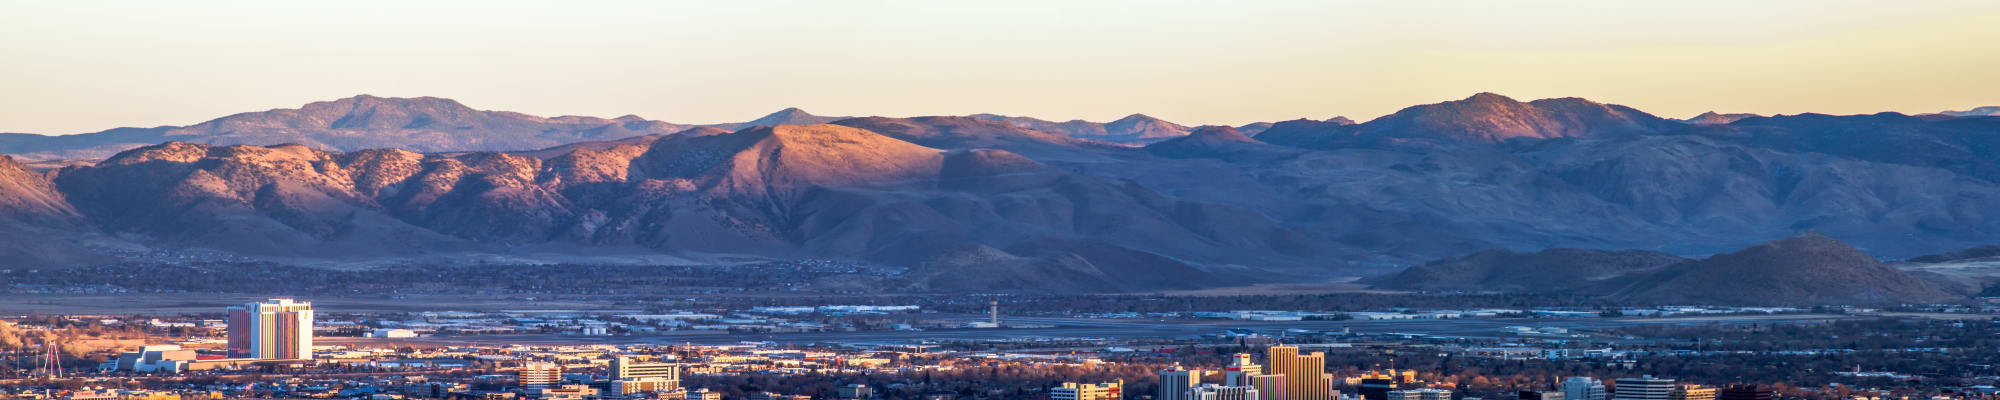 Apply to Northwind Apartments in Reno, Nevada